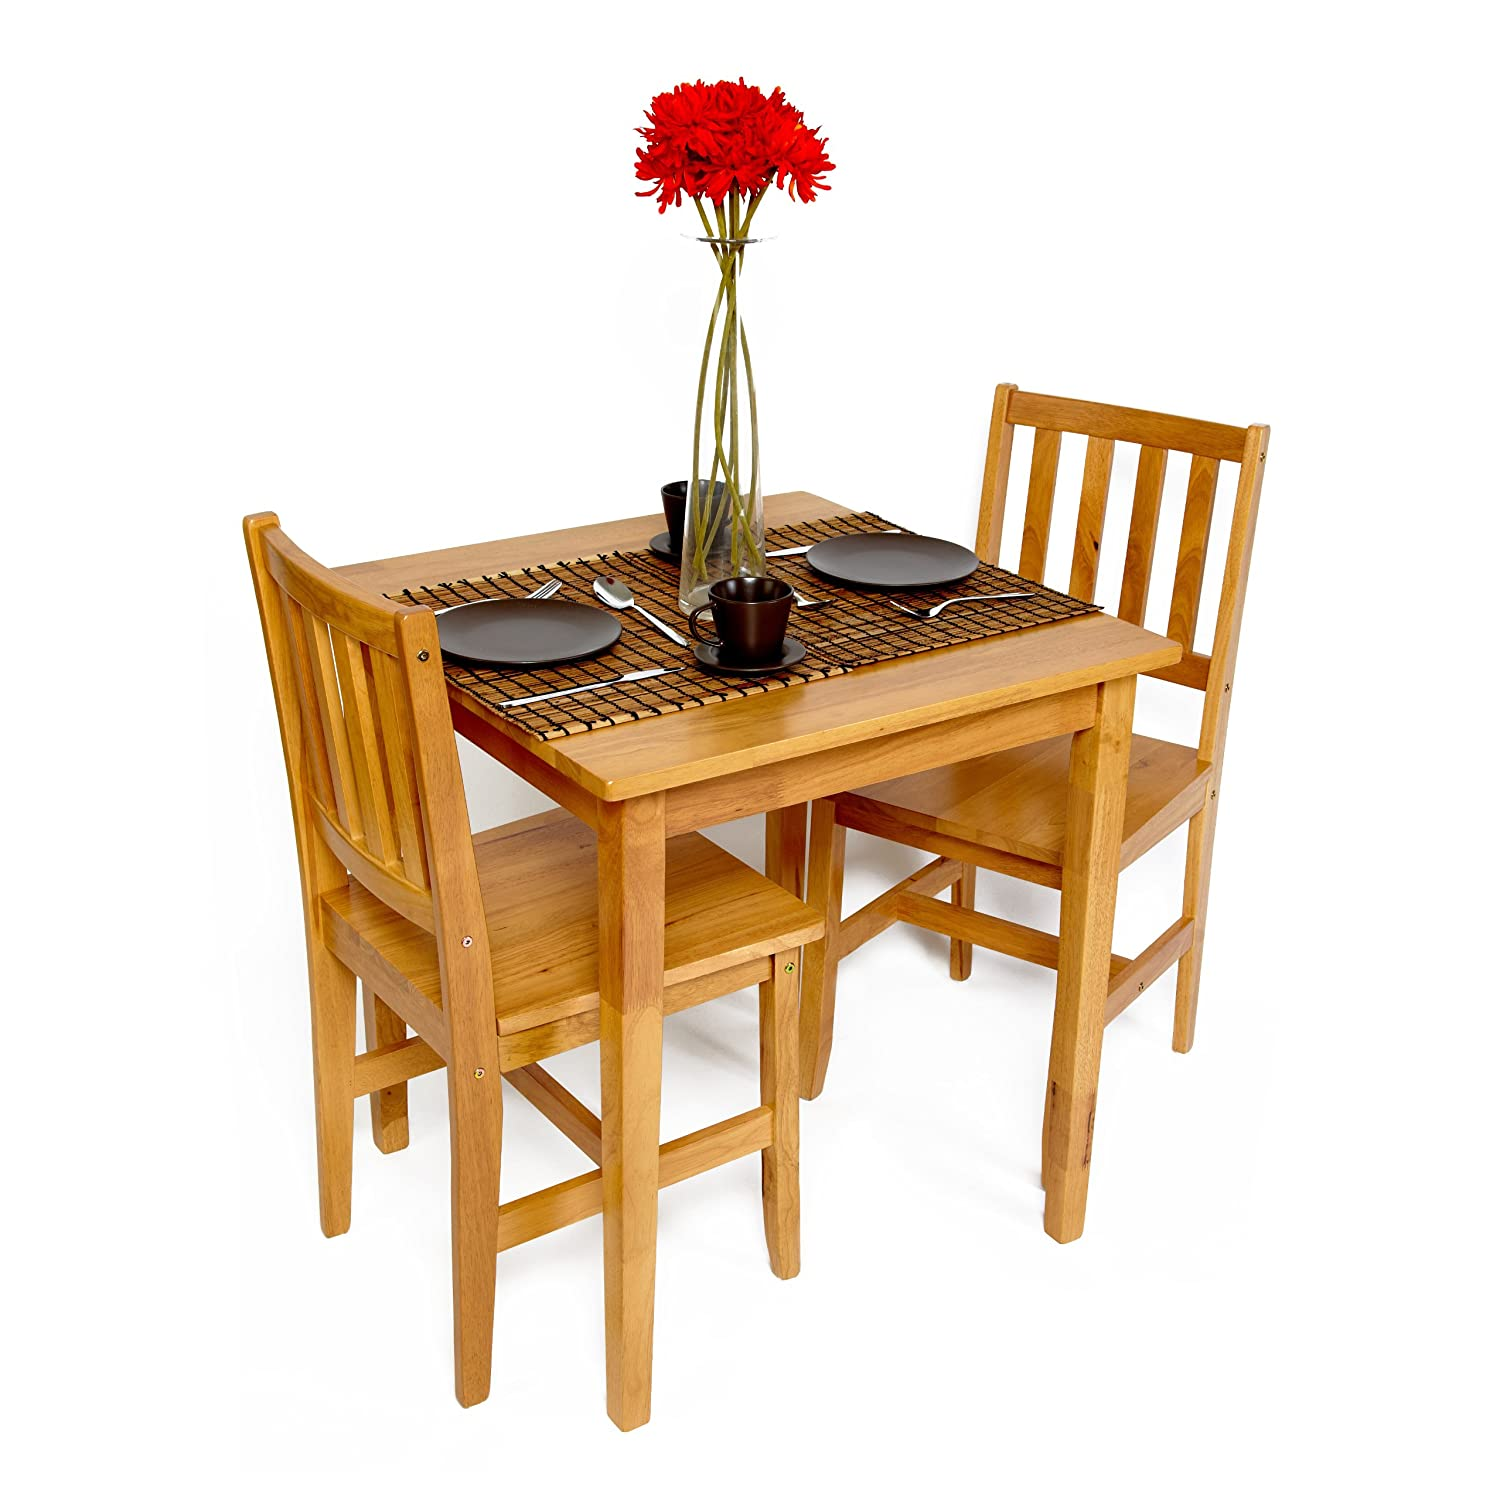 Table and chairs set dining bistro small cafe tables wood for Small kitchen table and chairs for sale